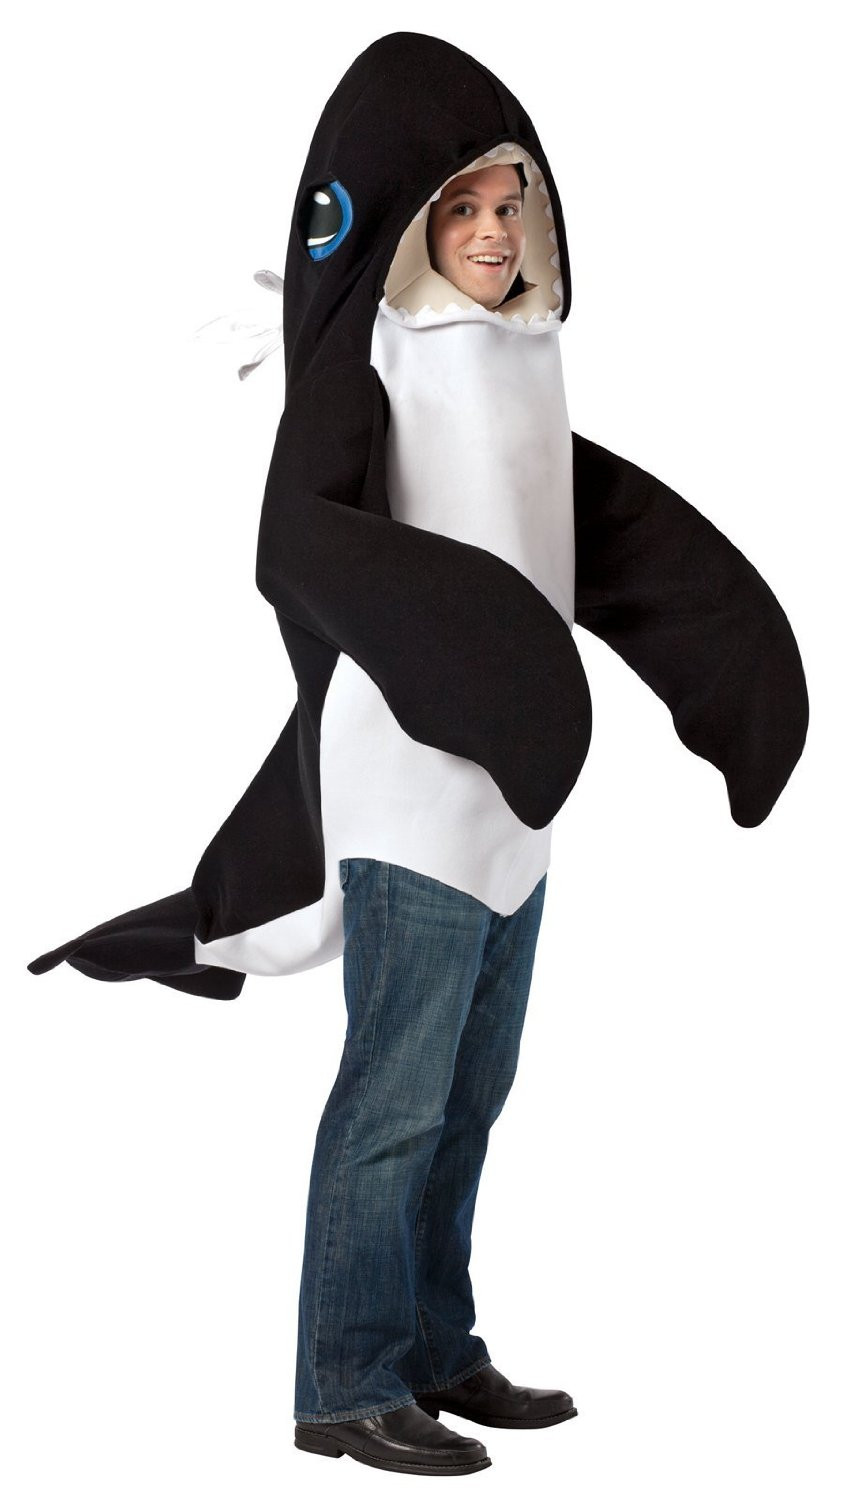 DIY Fish Costumes For Adults  Fish Costumes for Men Women Kids